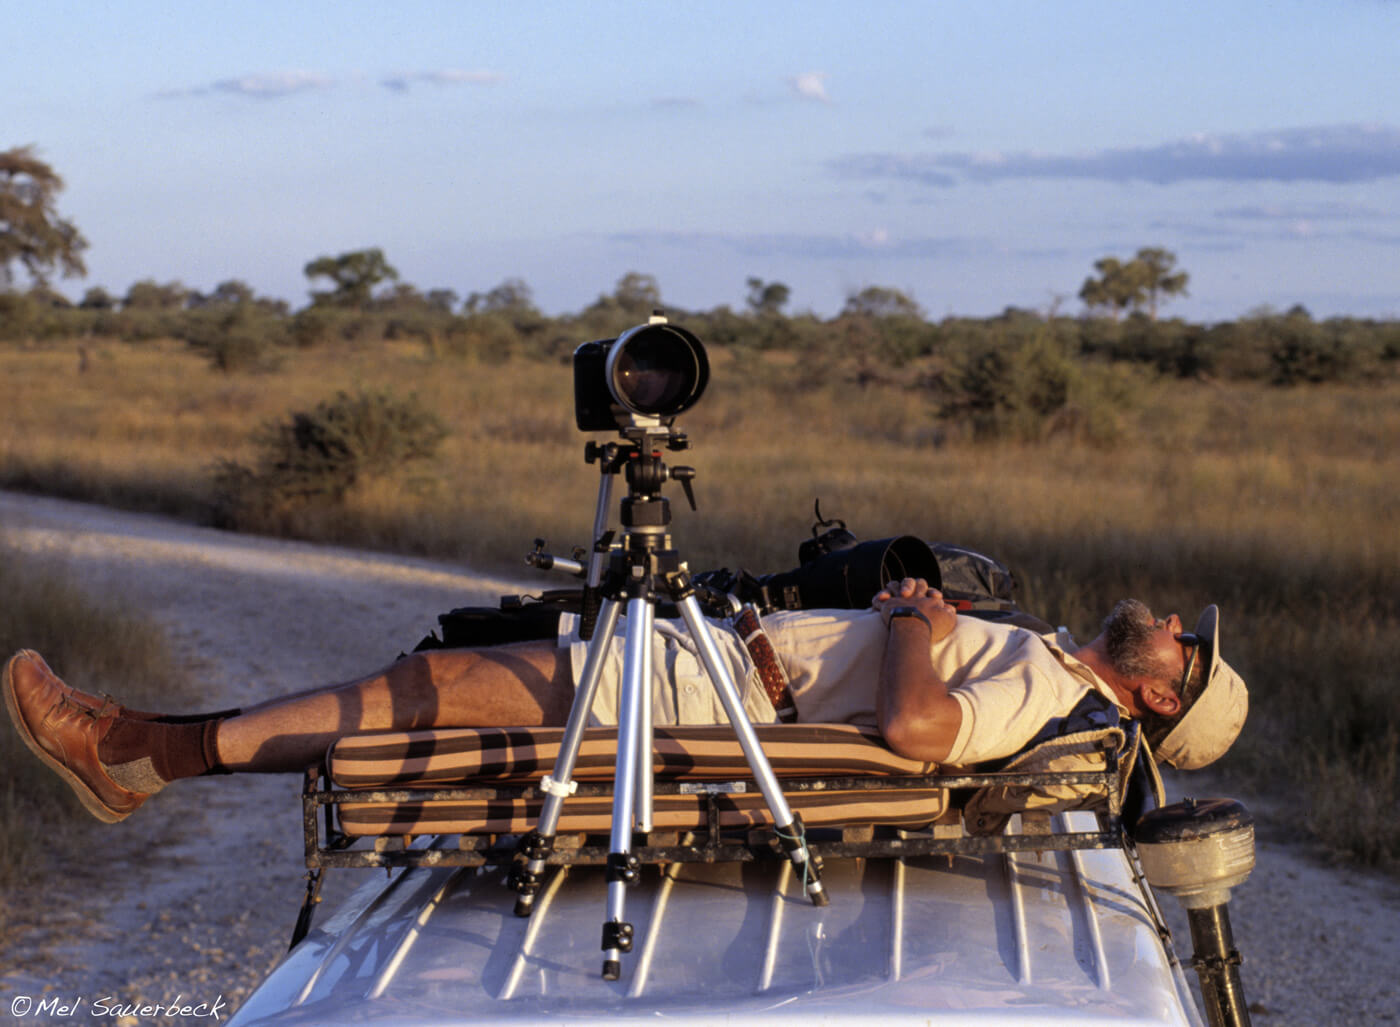 Photographer resting on Safari vehicle